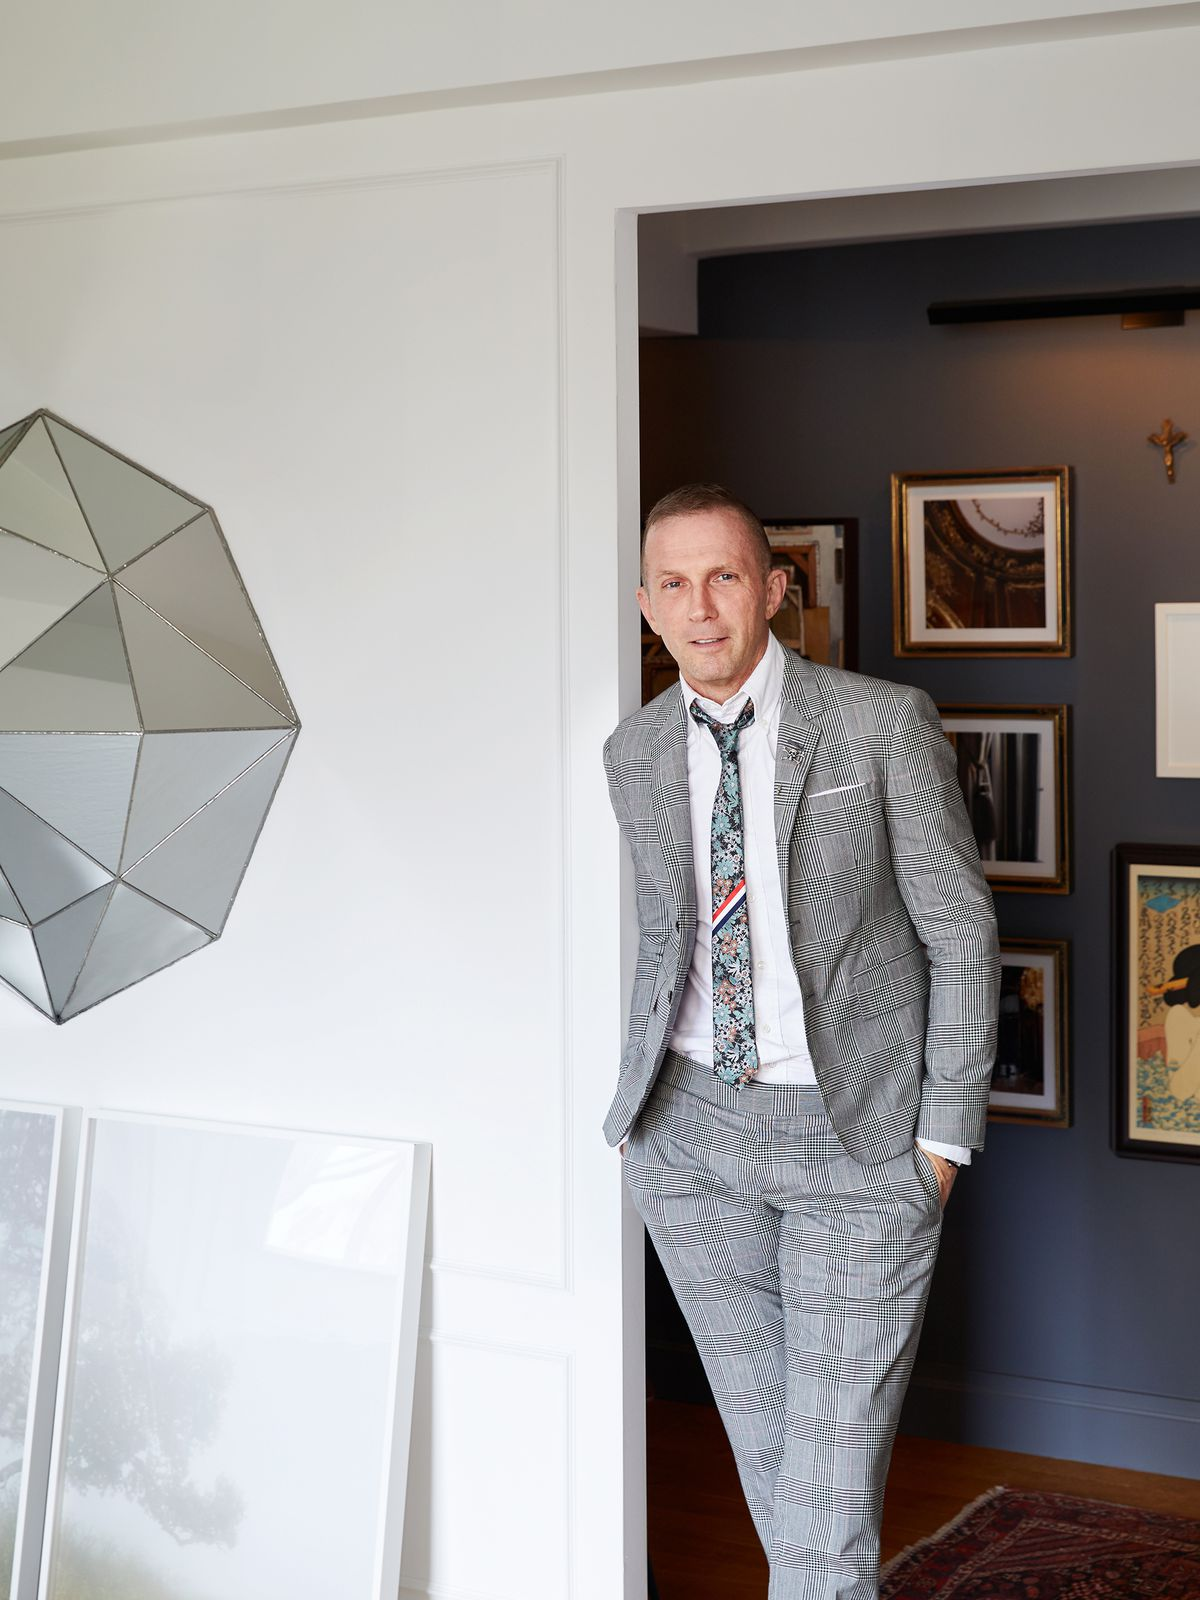 Designer Tim Campbell stands in a doorway in his apartment. He wears a plaid suit.